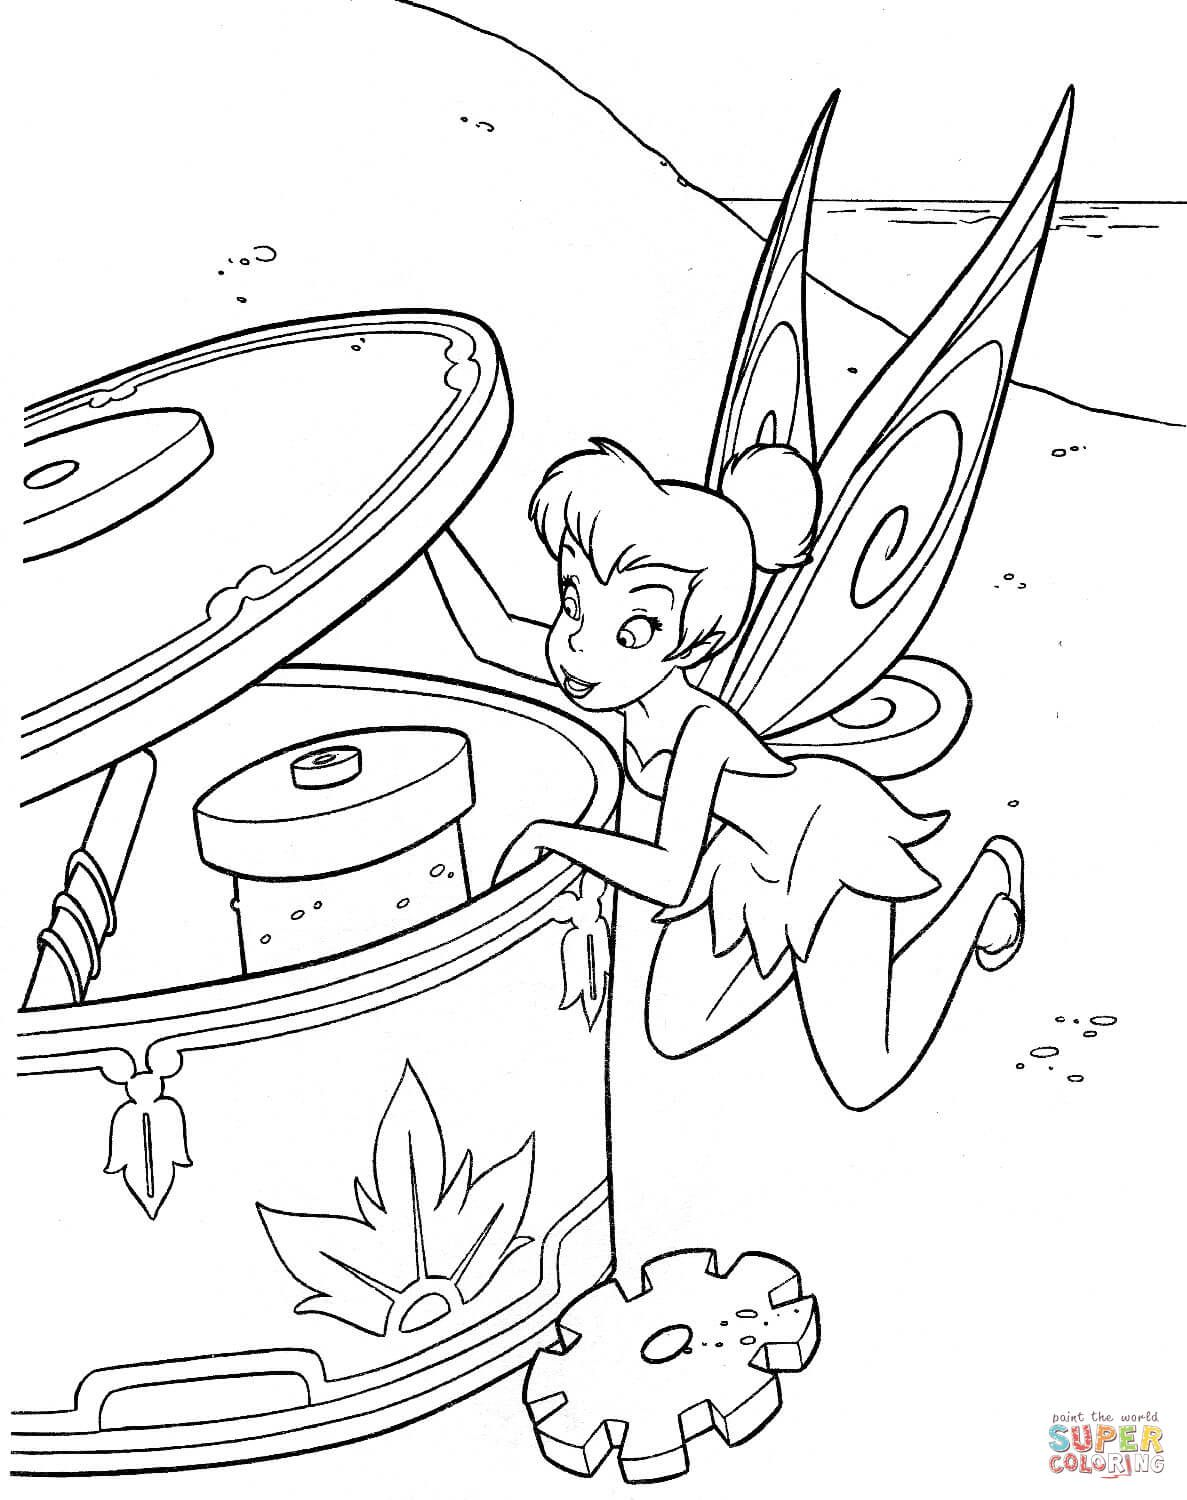 Tinkerbell coloring pages googlesøgning barbie pinterest